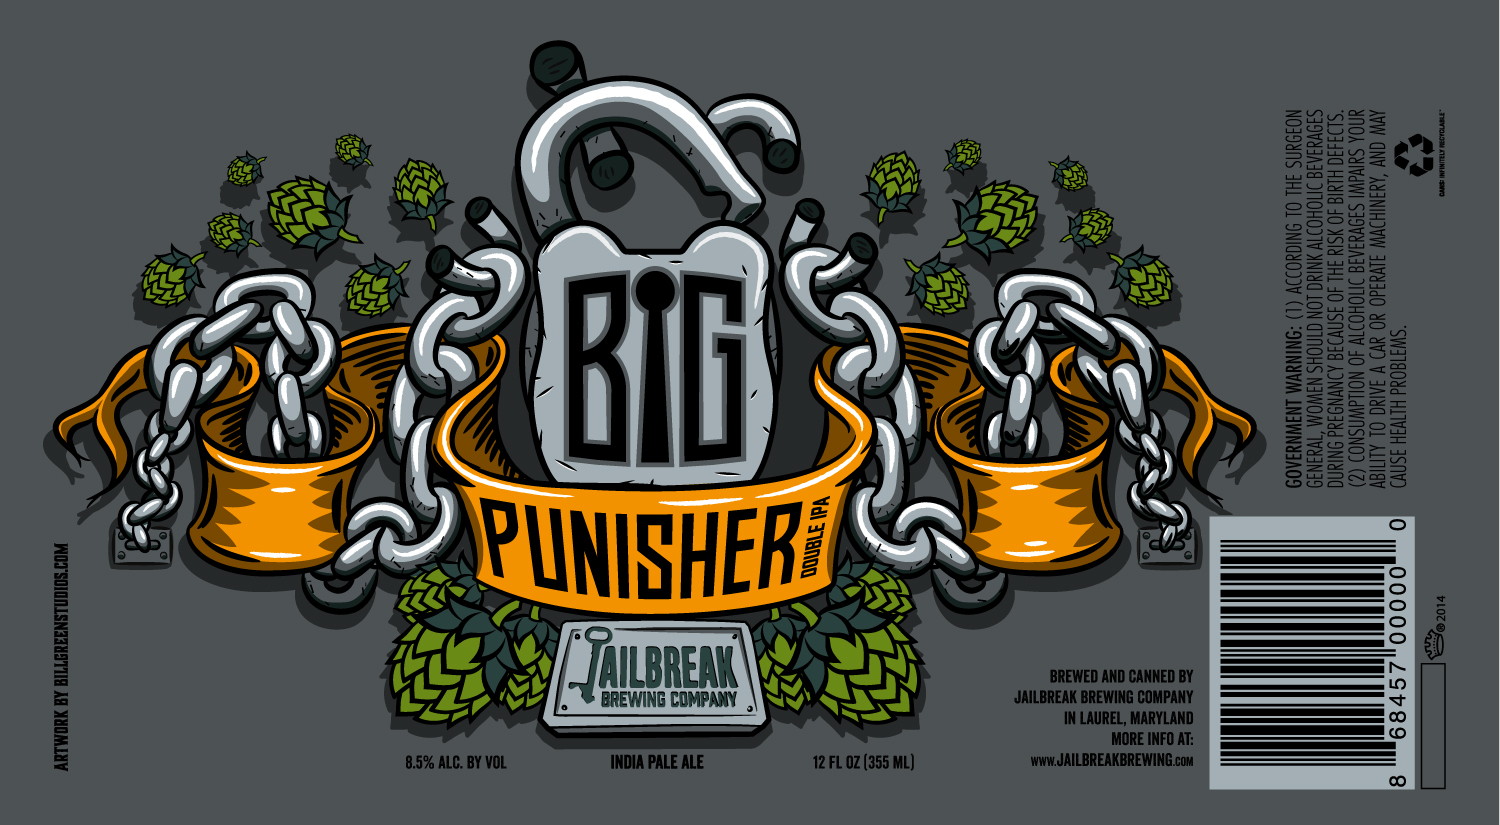 6126_The_Punisher_LABEL_21